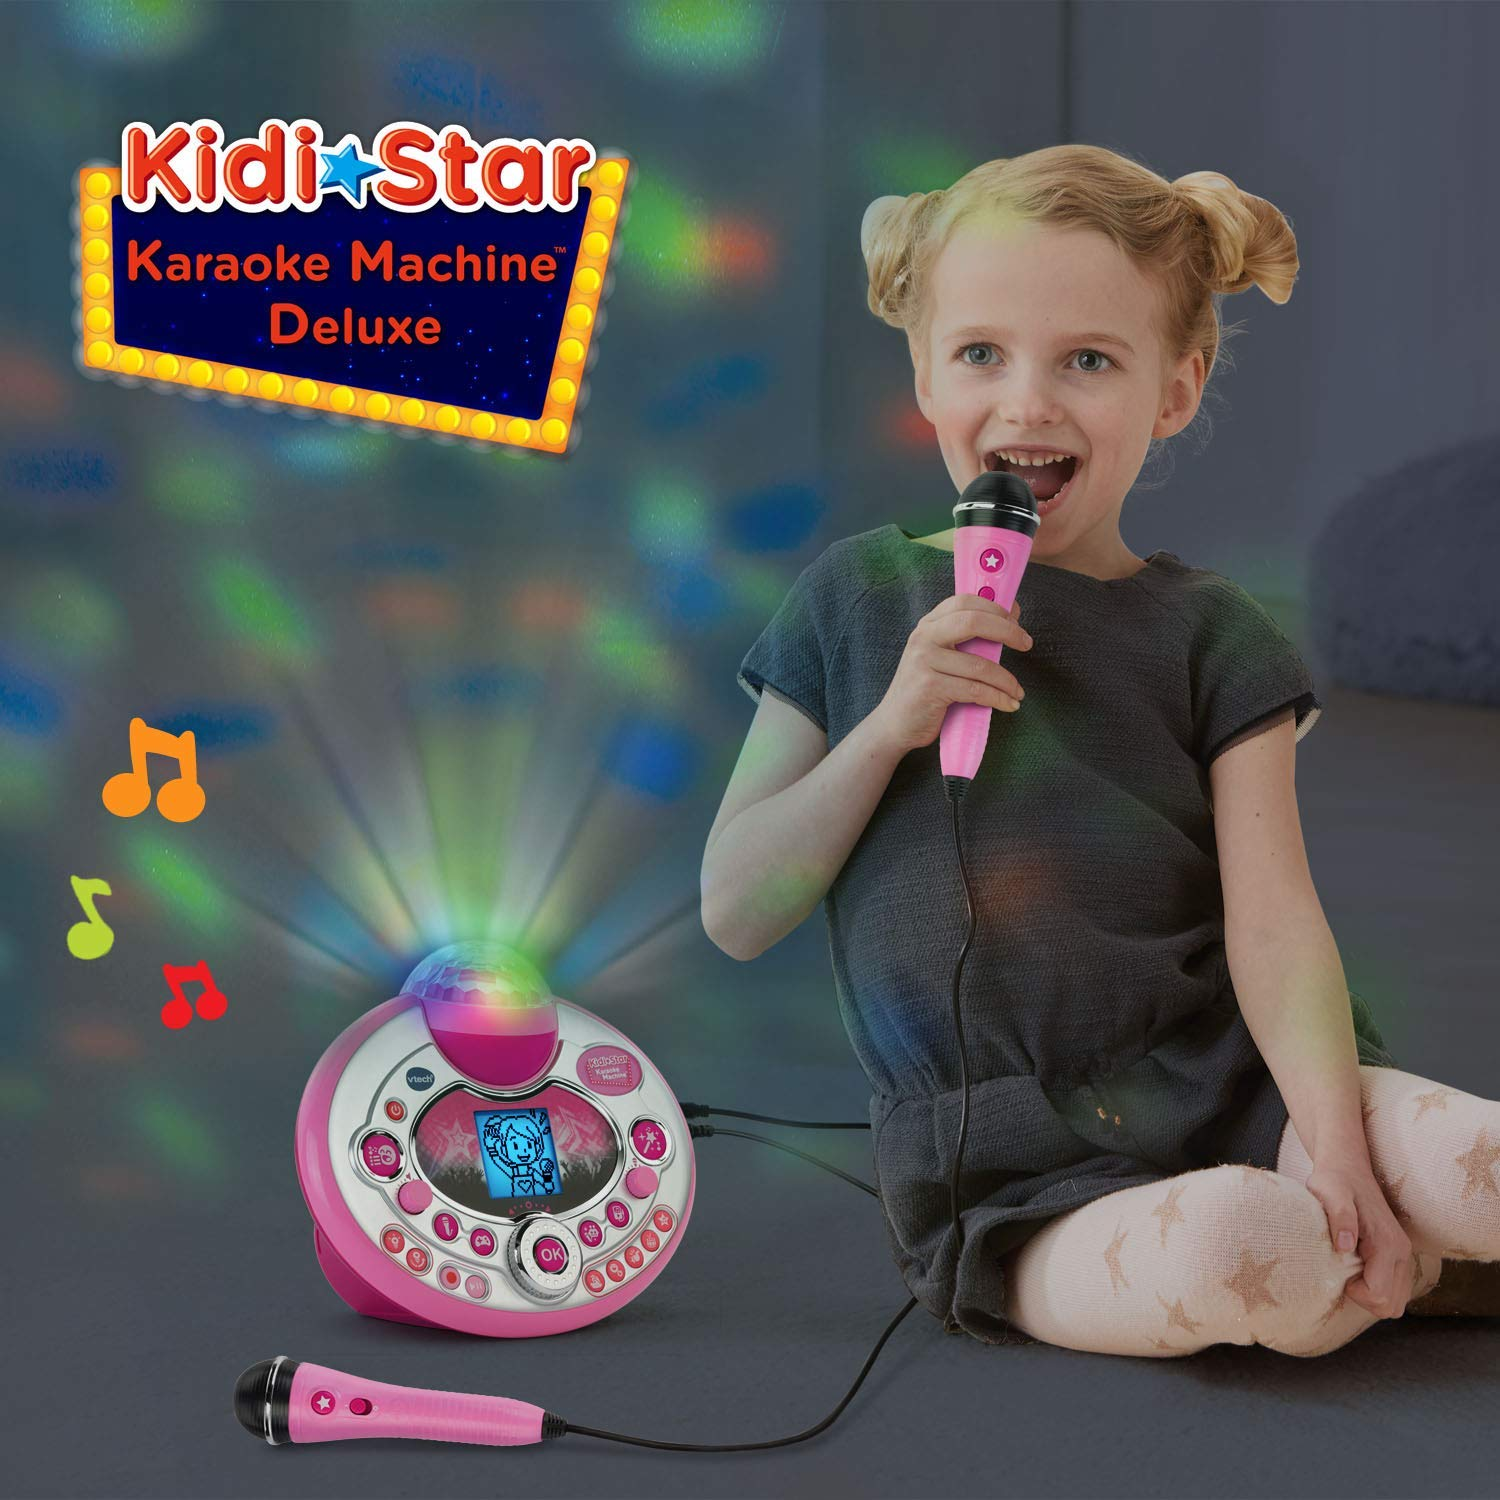 VTech Kidi Star Karaoke System 2 Mics with Mic Stand & AC Adapter, Pink (Renewed) by VTech (Image #5)